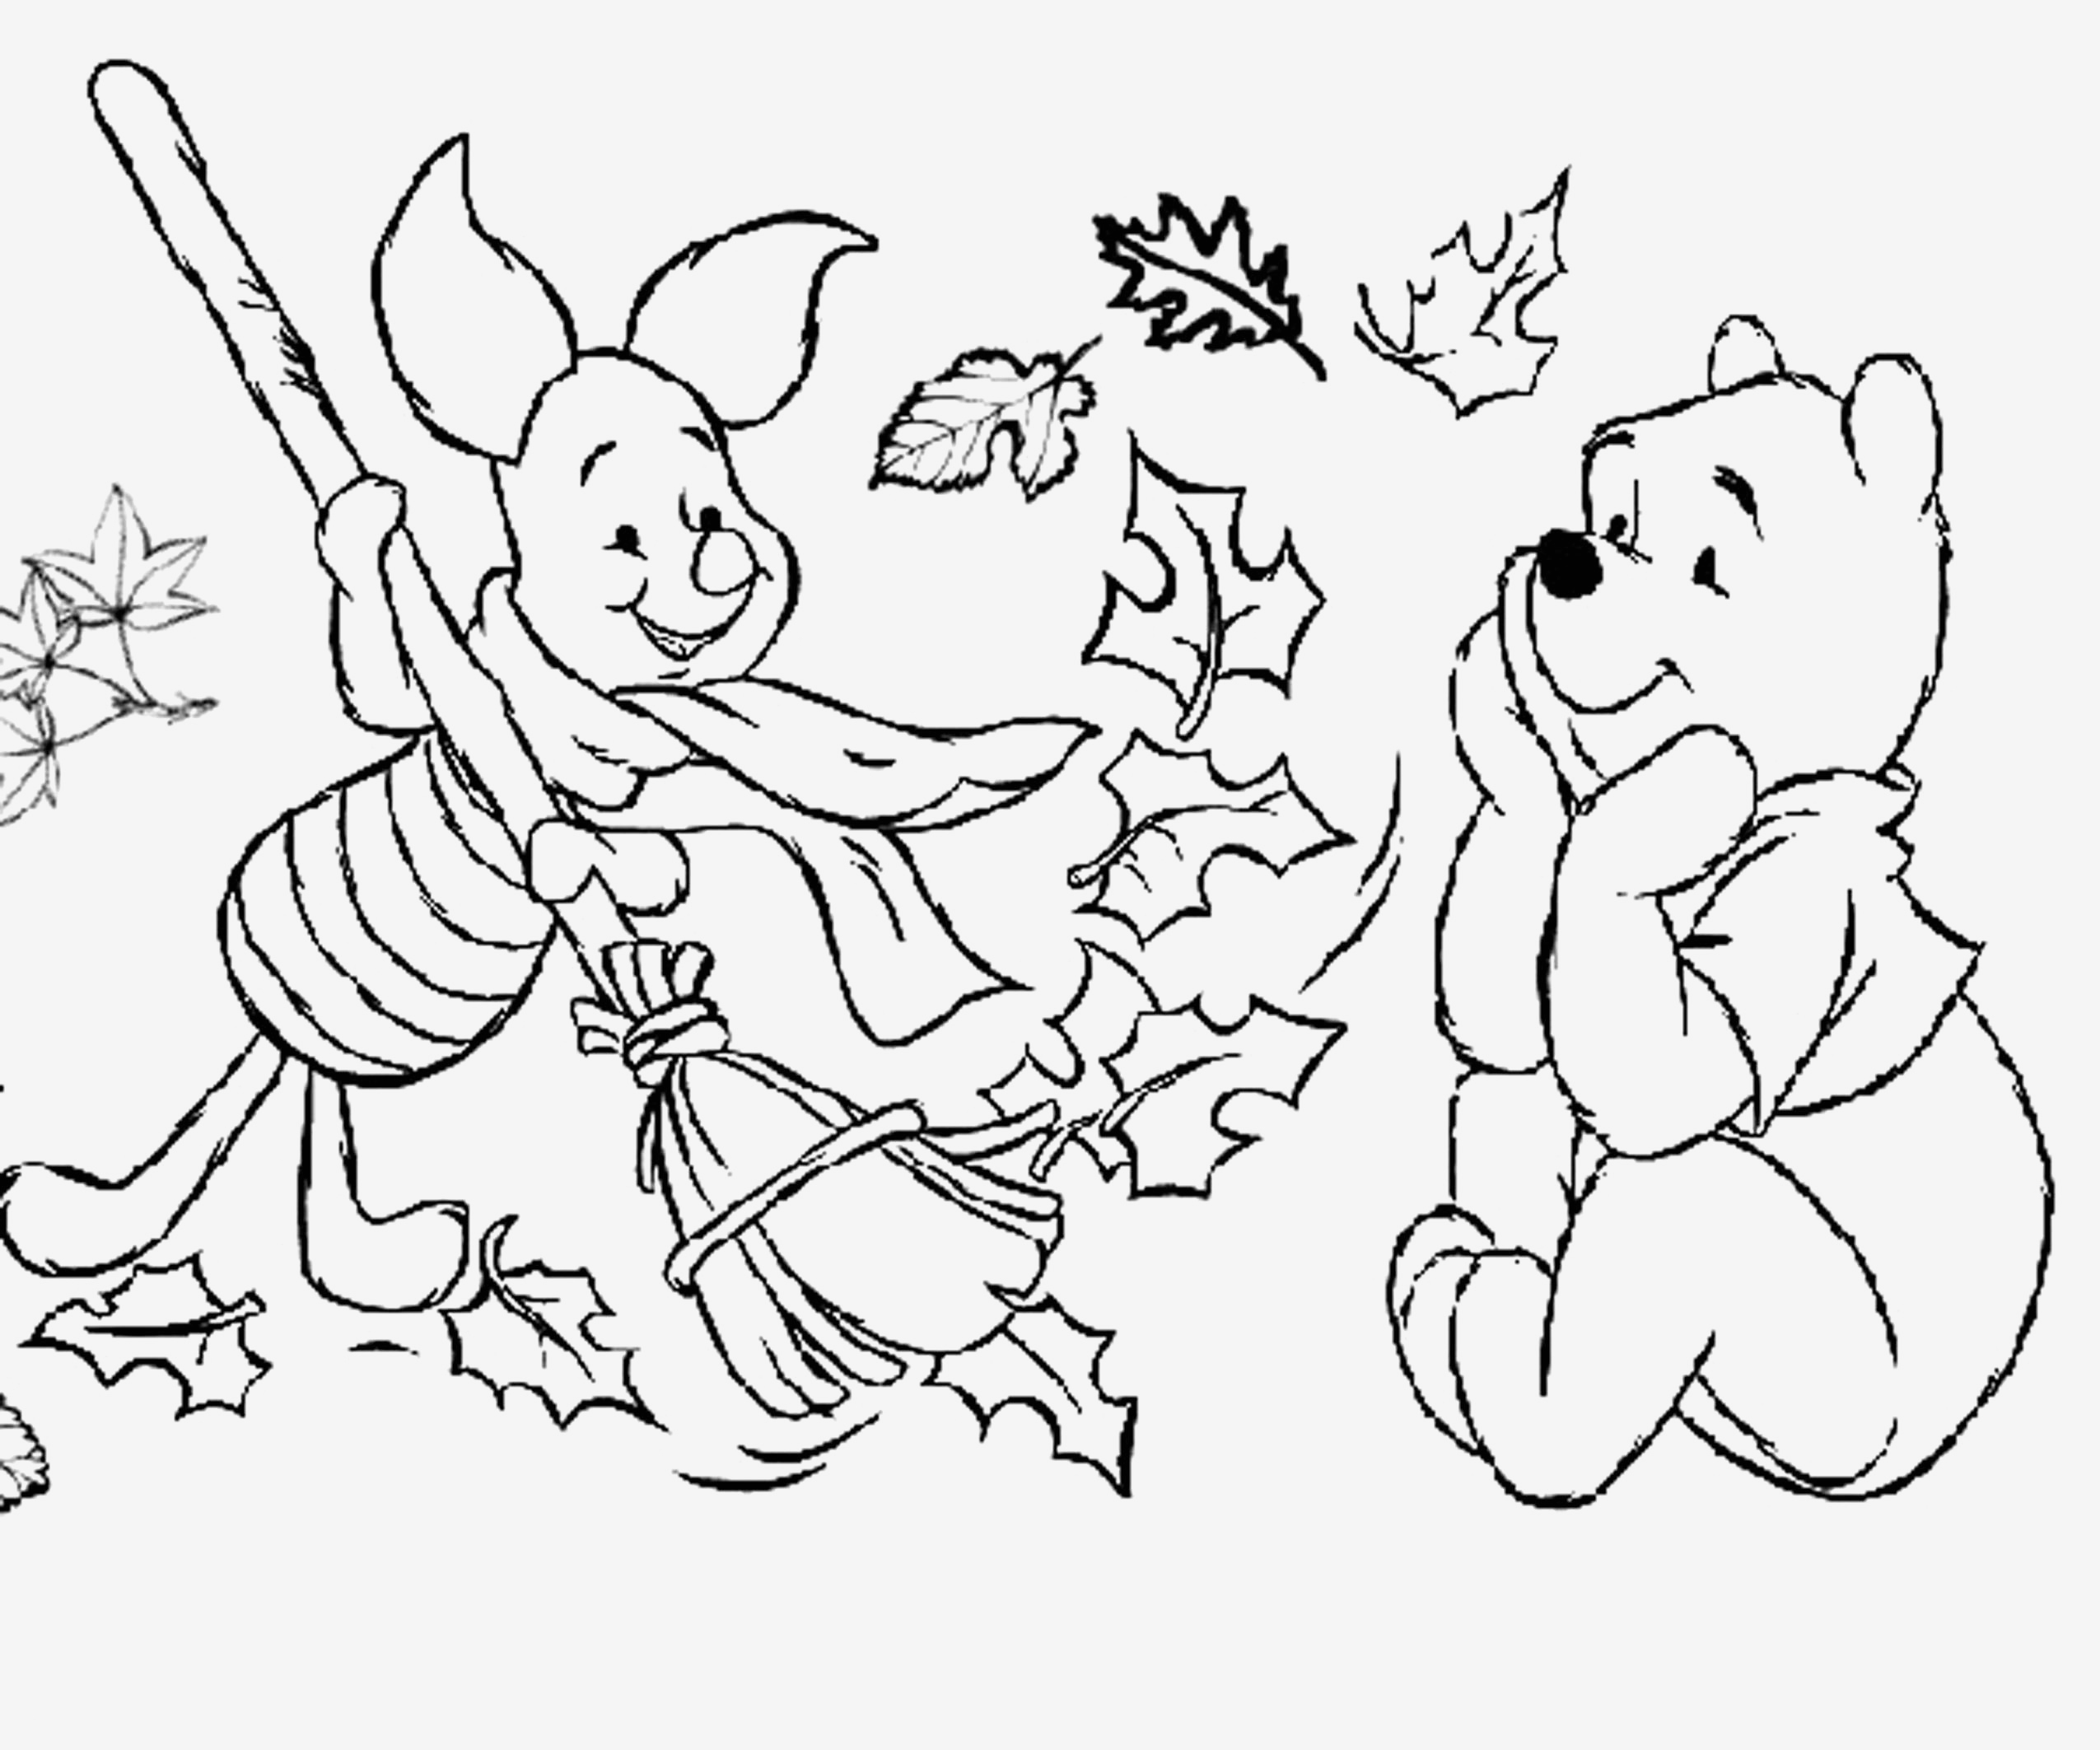 preschool thanksgiving coloring pages Collection-Easy Adult Coloring Pages Free Print Simple Adult Coloring Pages Elegant Best Coloring Page Adult Od 9-j